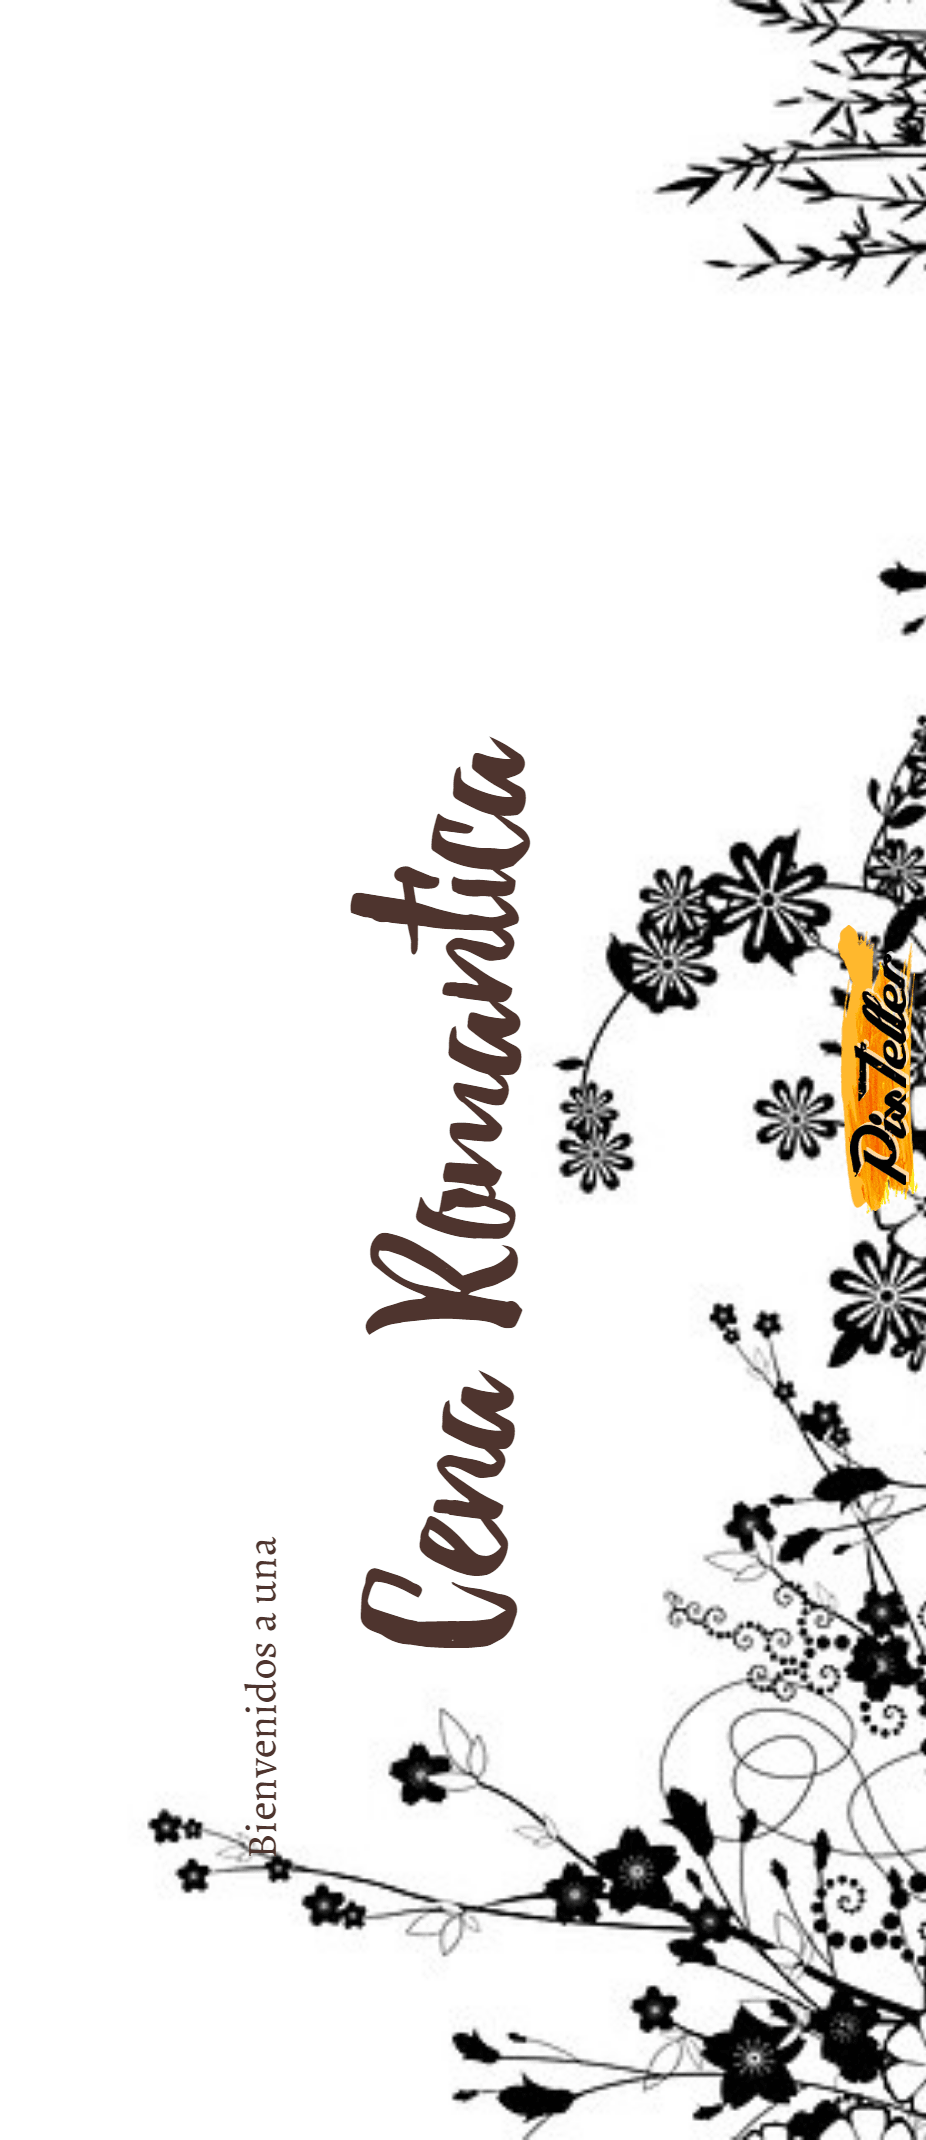 Text,                Black,                And,                White,                Font,                Tree,                Calligraphy,                Line,                Design,                Art,                Monochrome,                Pattern,                 Free Image